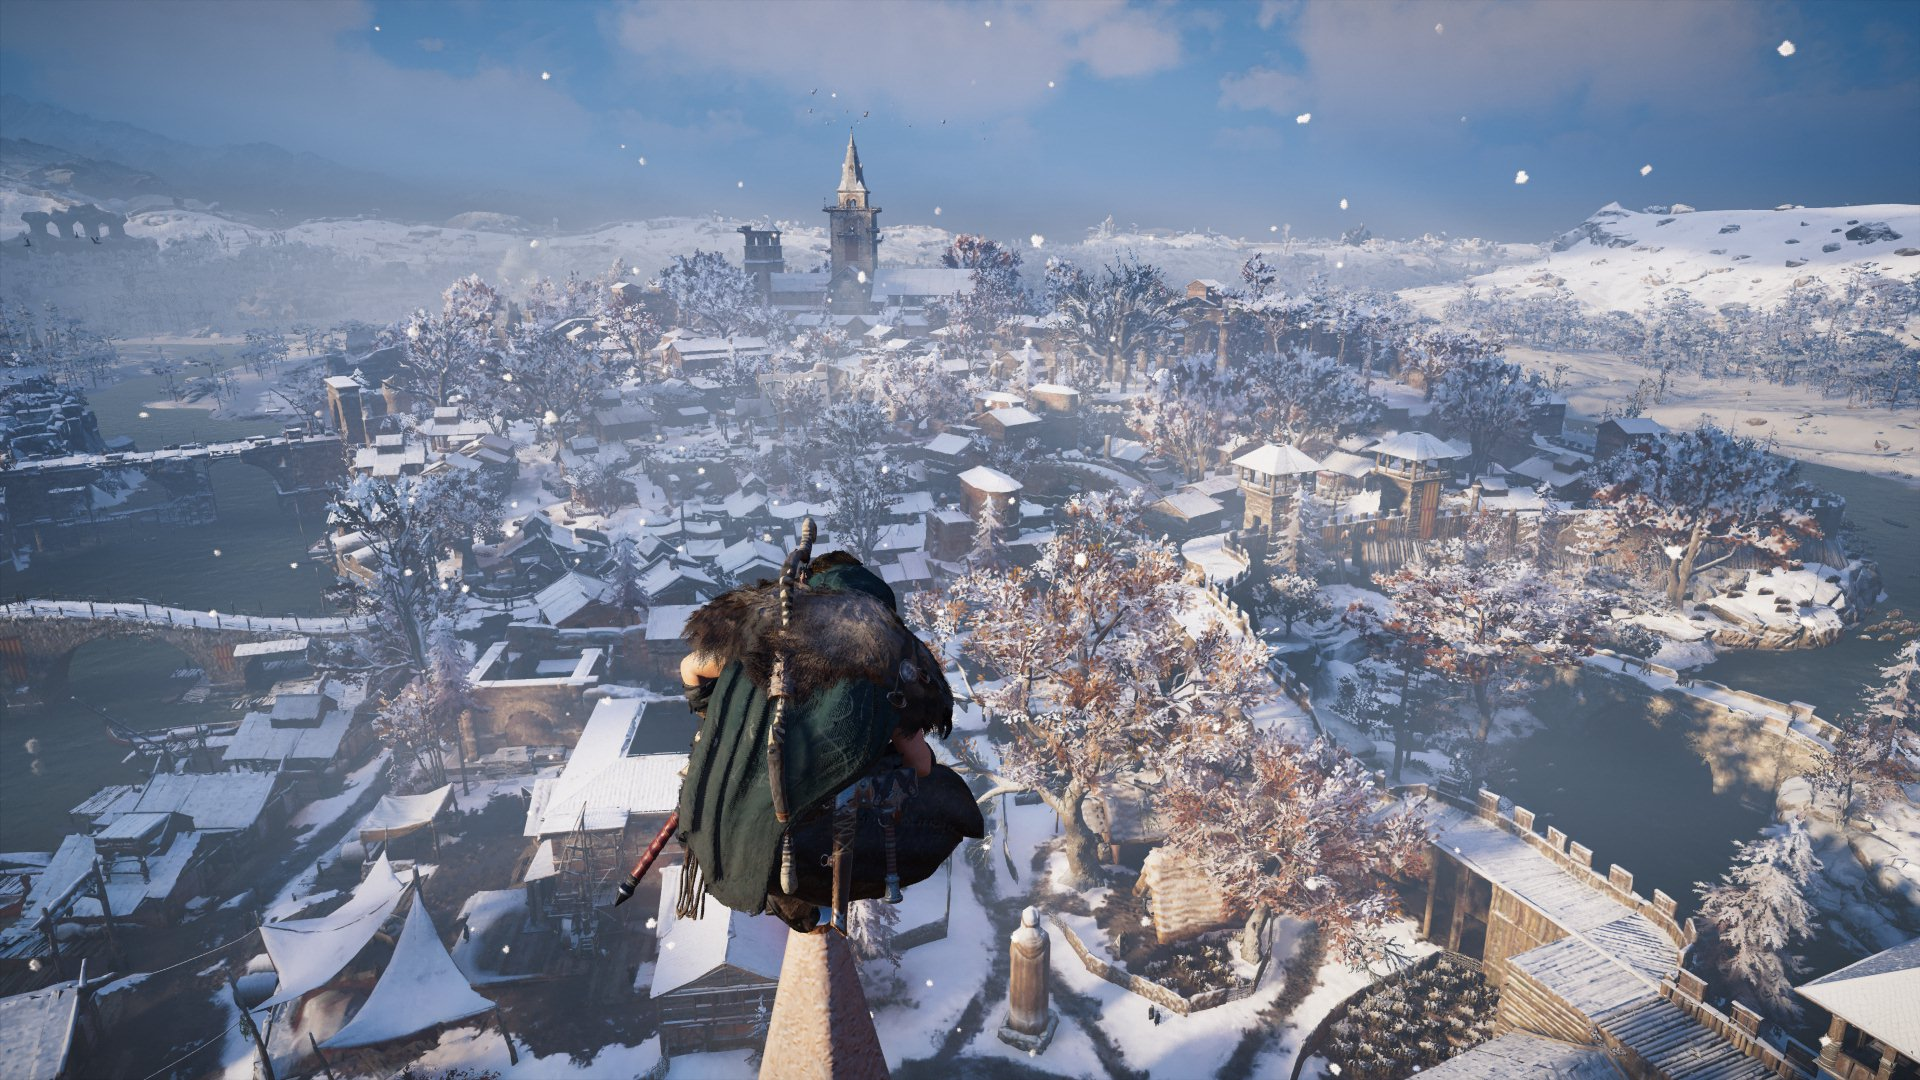 Eivor looks across a snowy town from the top of a church steeple